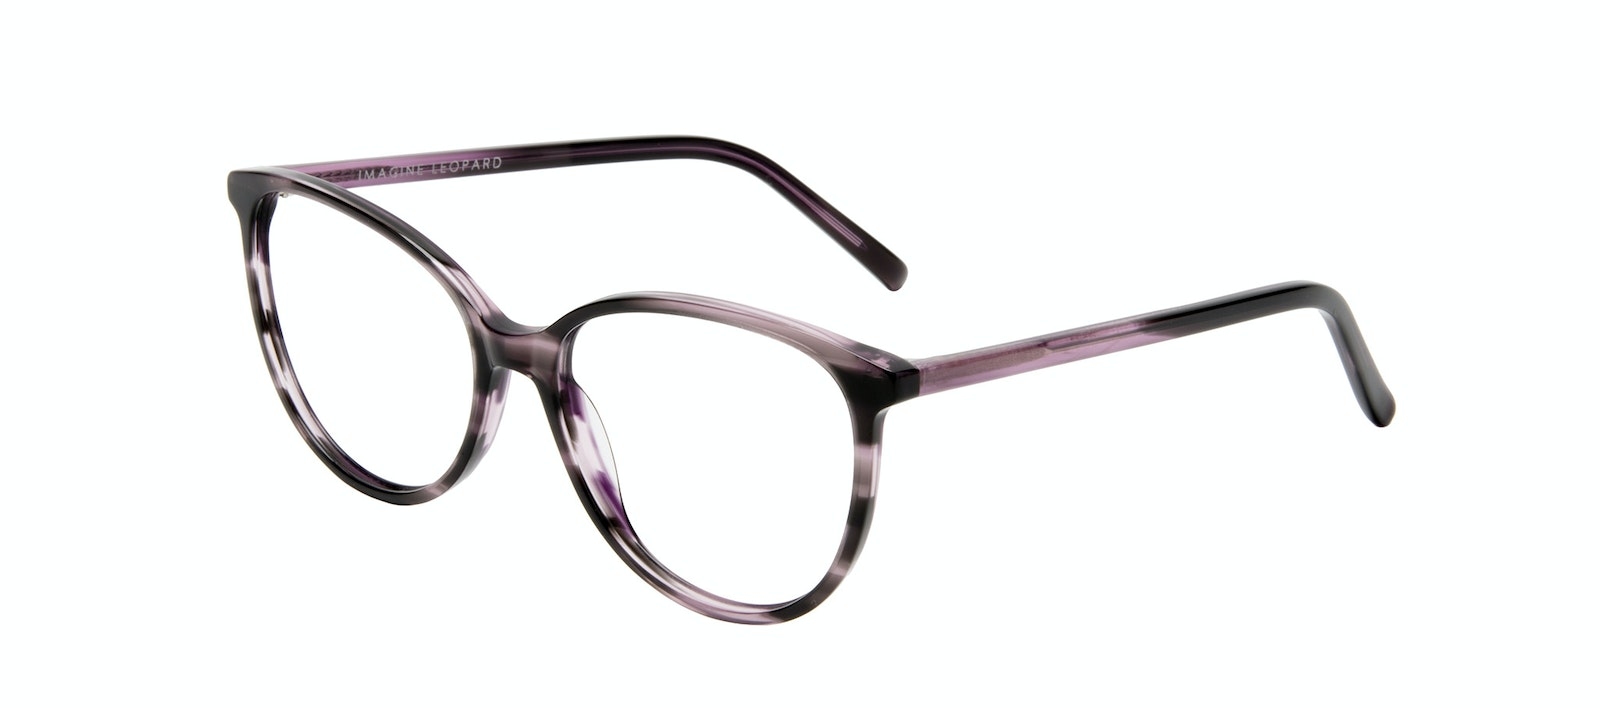 Affordable Fashion Glasses Round Eyeglasses Women Imagine Leopard Tilt